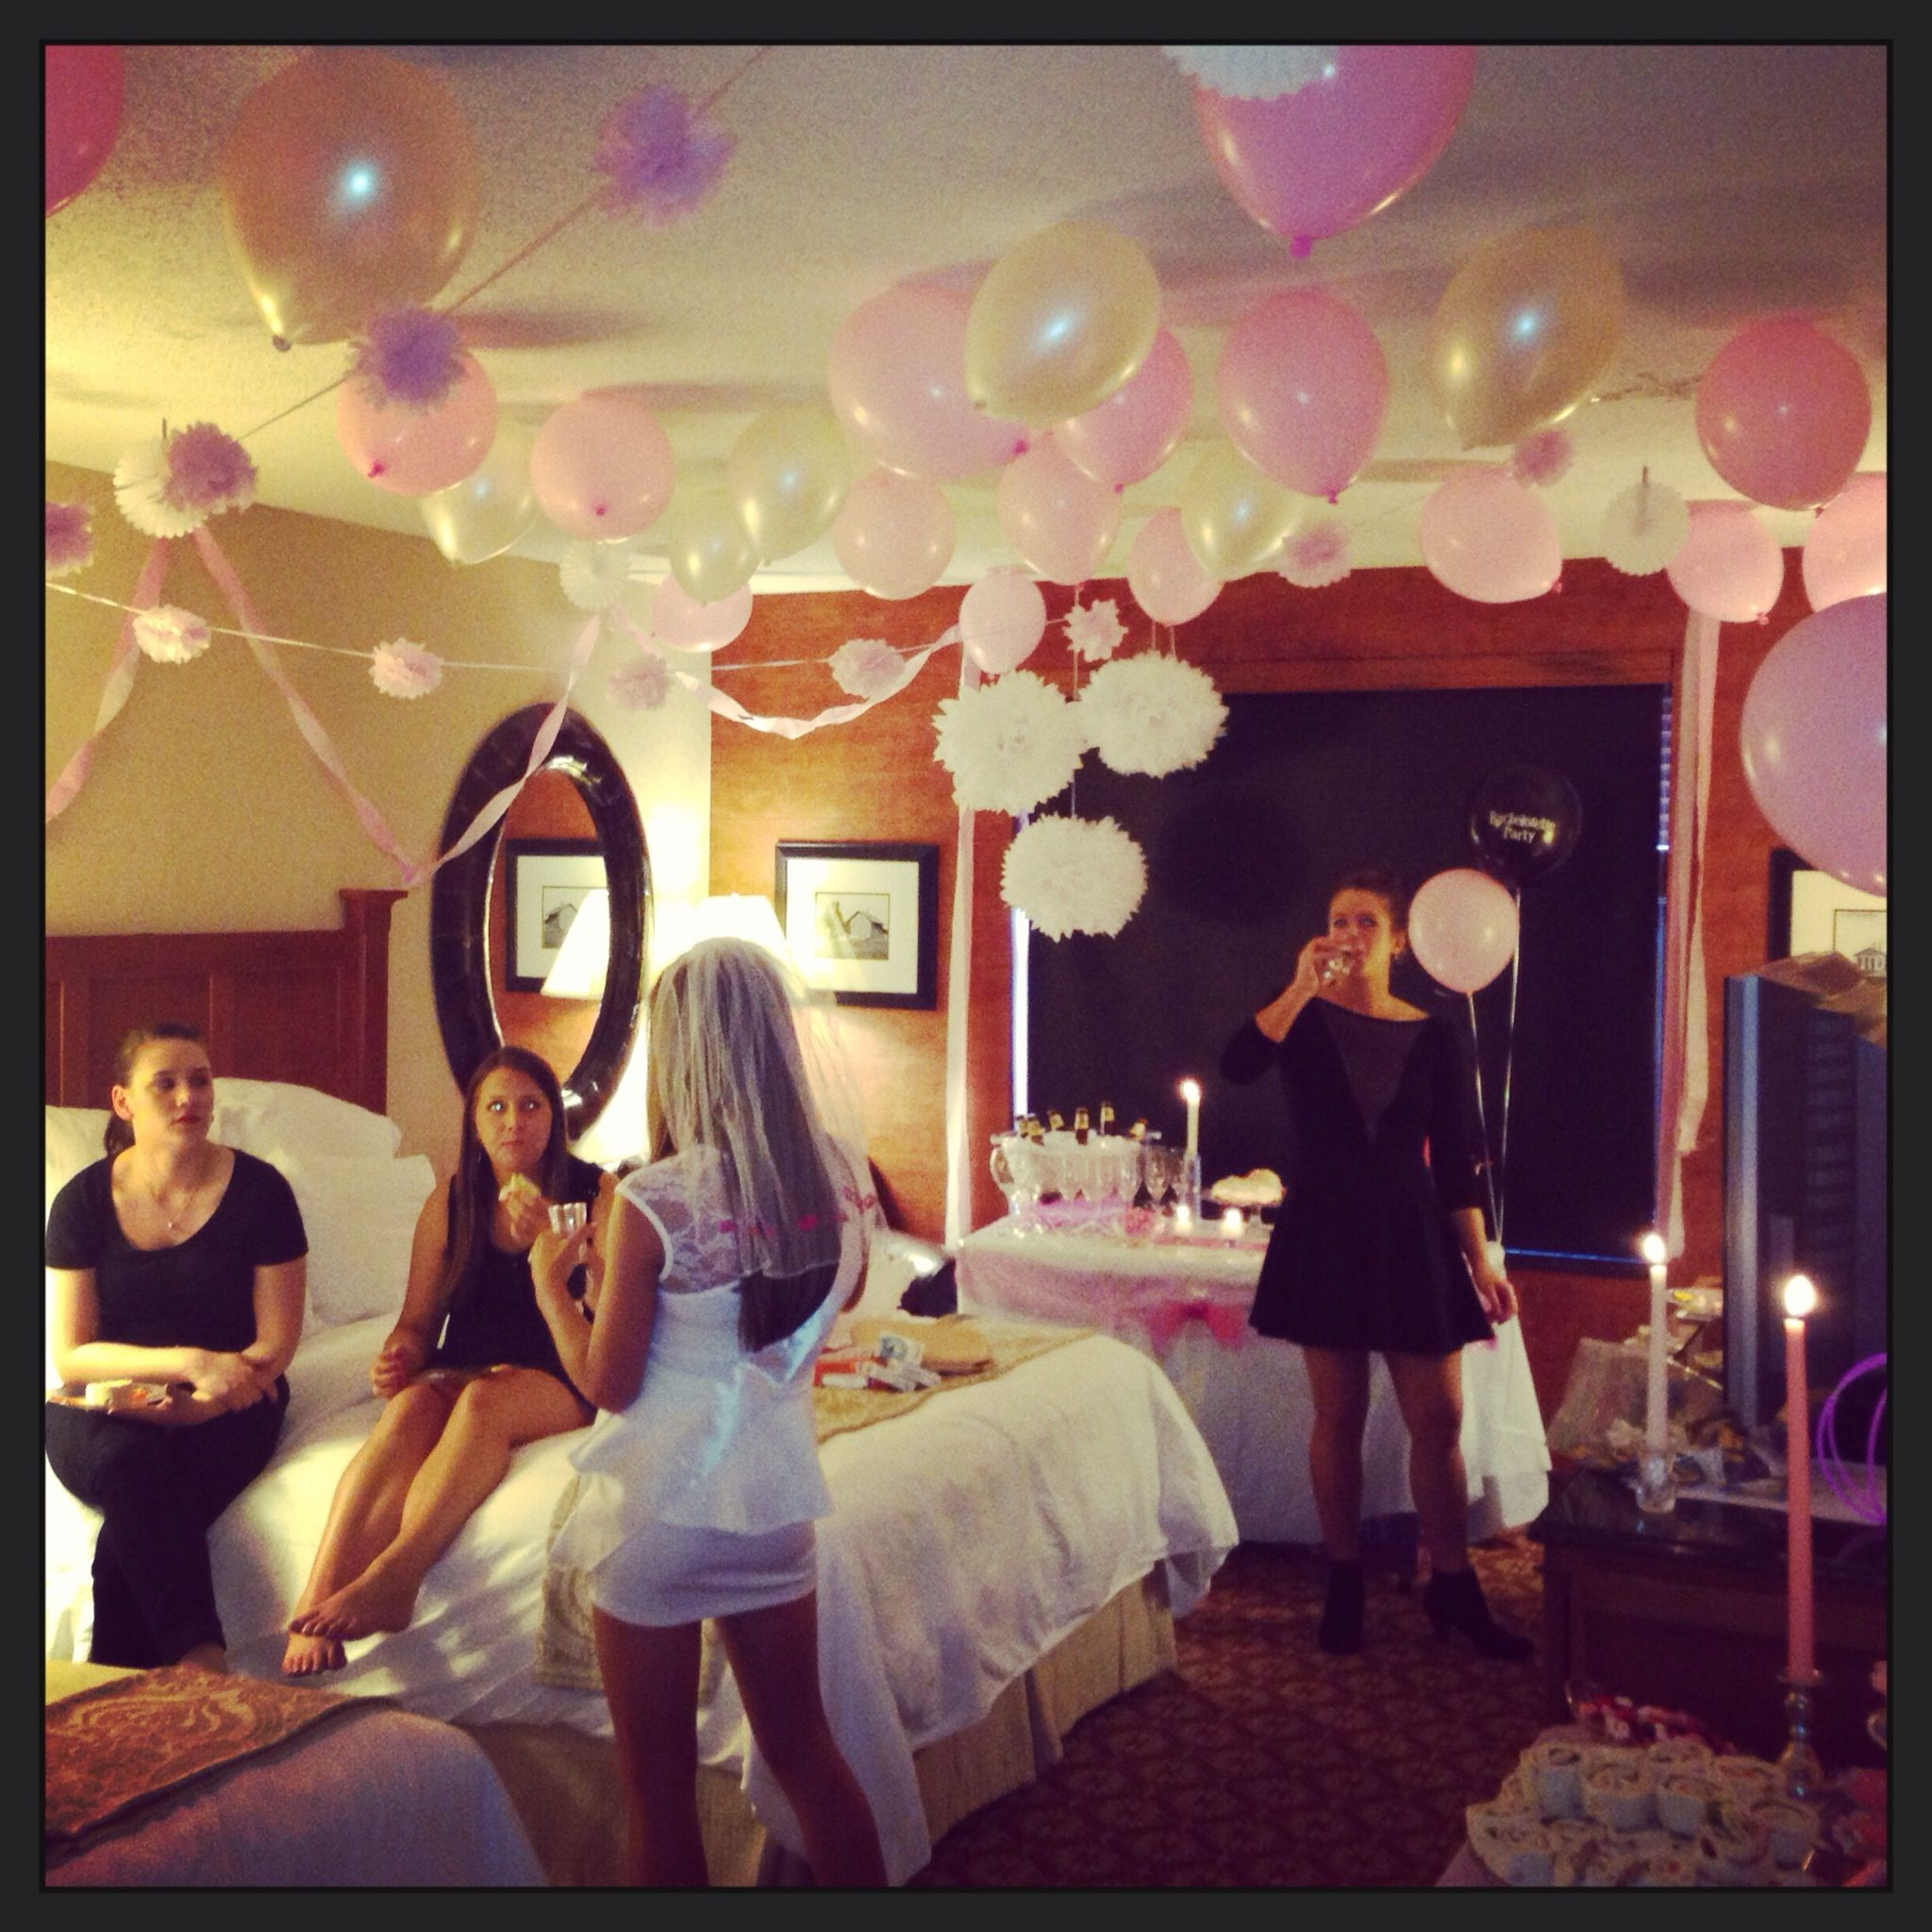 Best 25 hotel bachelorette party ideas on pinterest for Hotel room decor